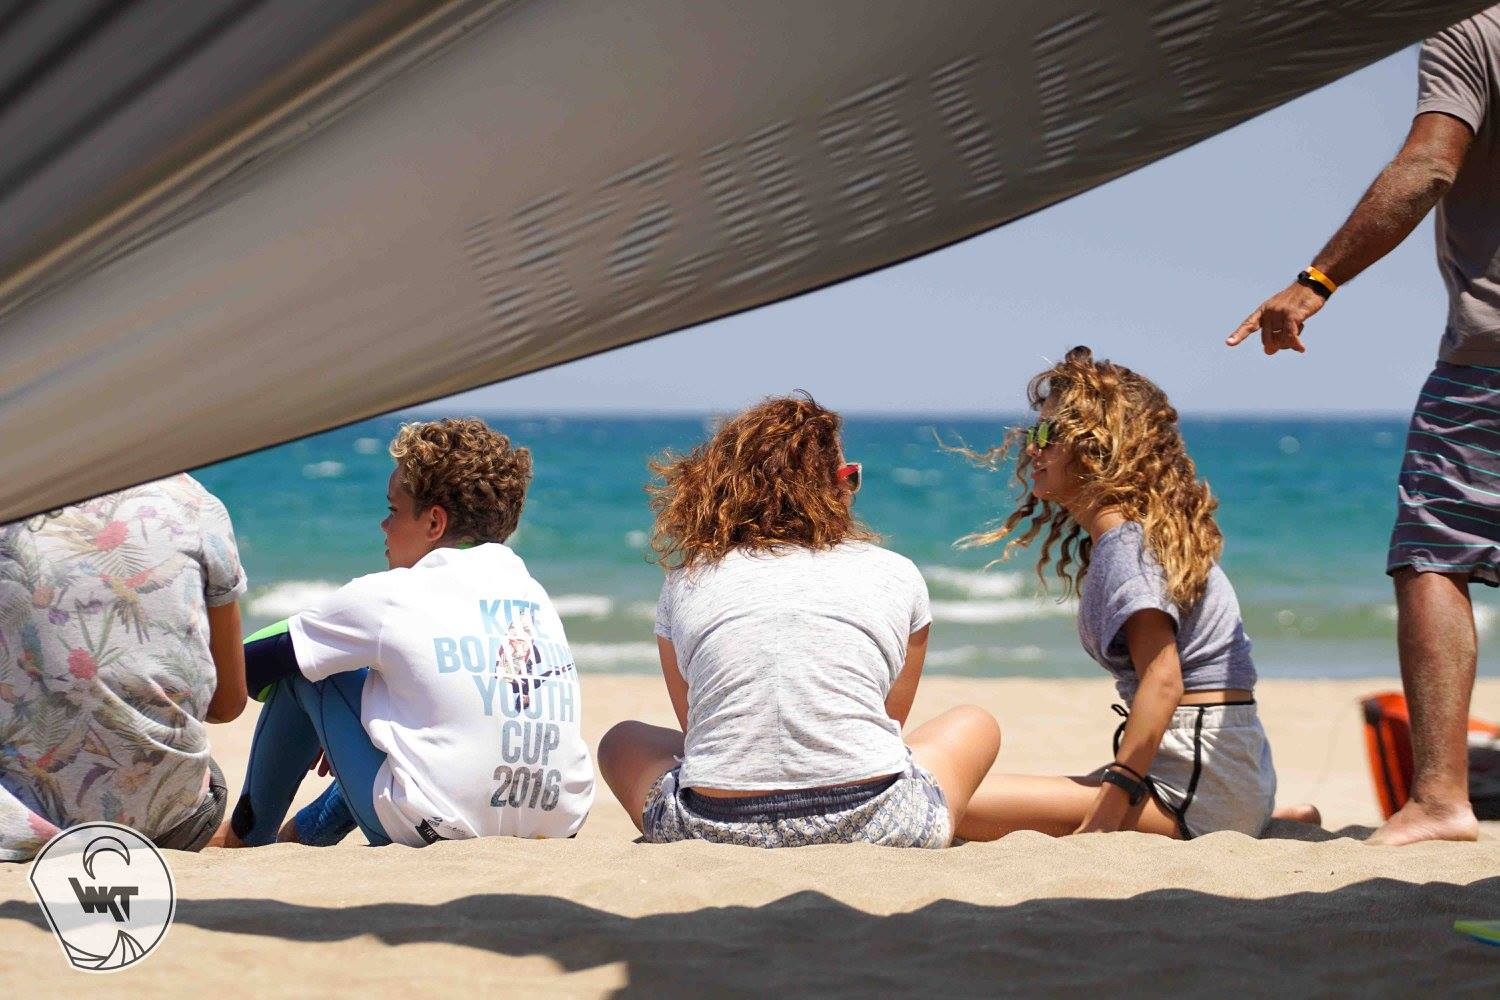 WKT_Youth_Cup kitesurfing